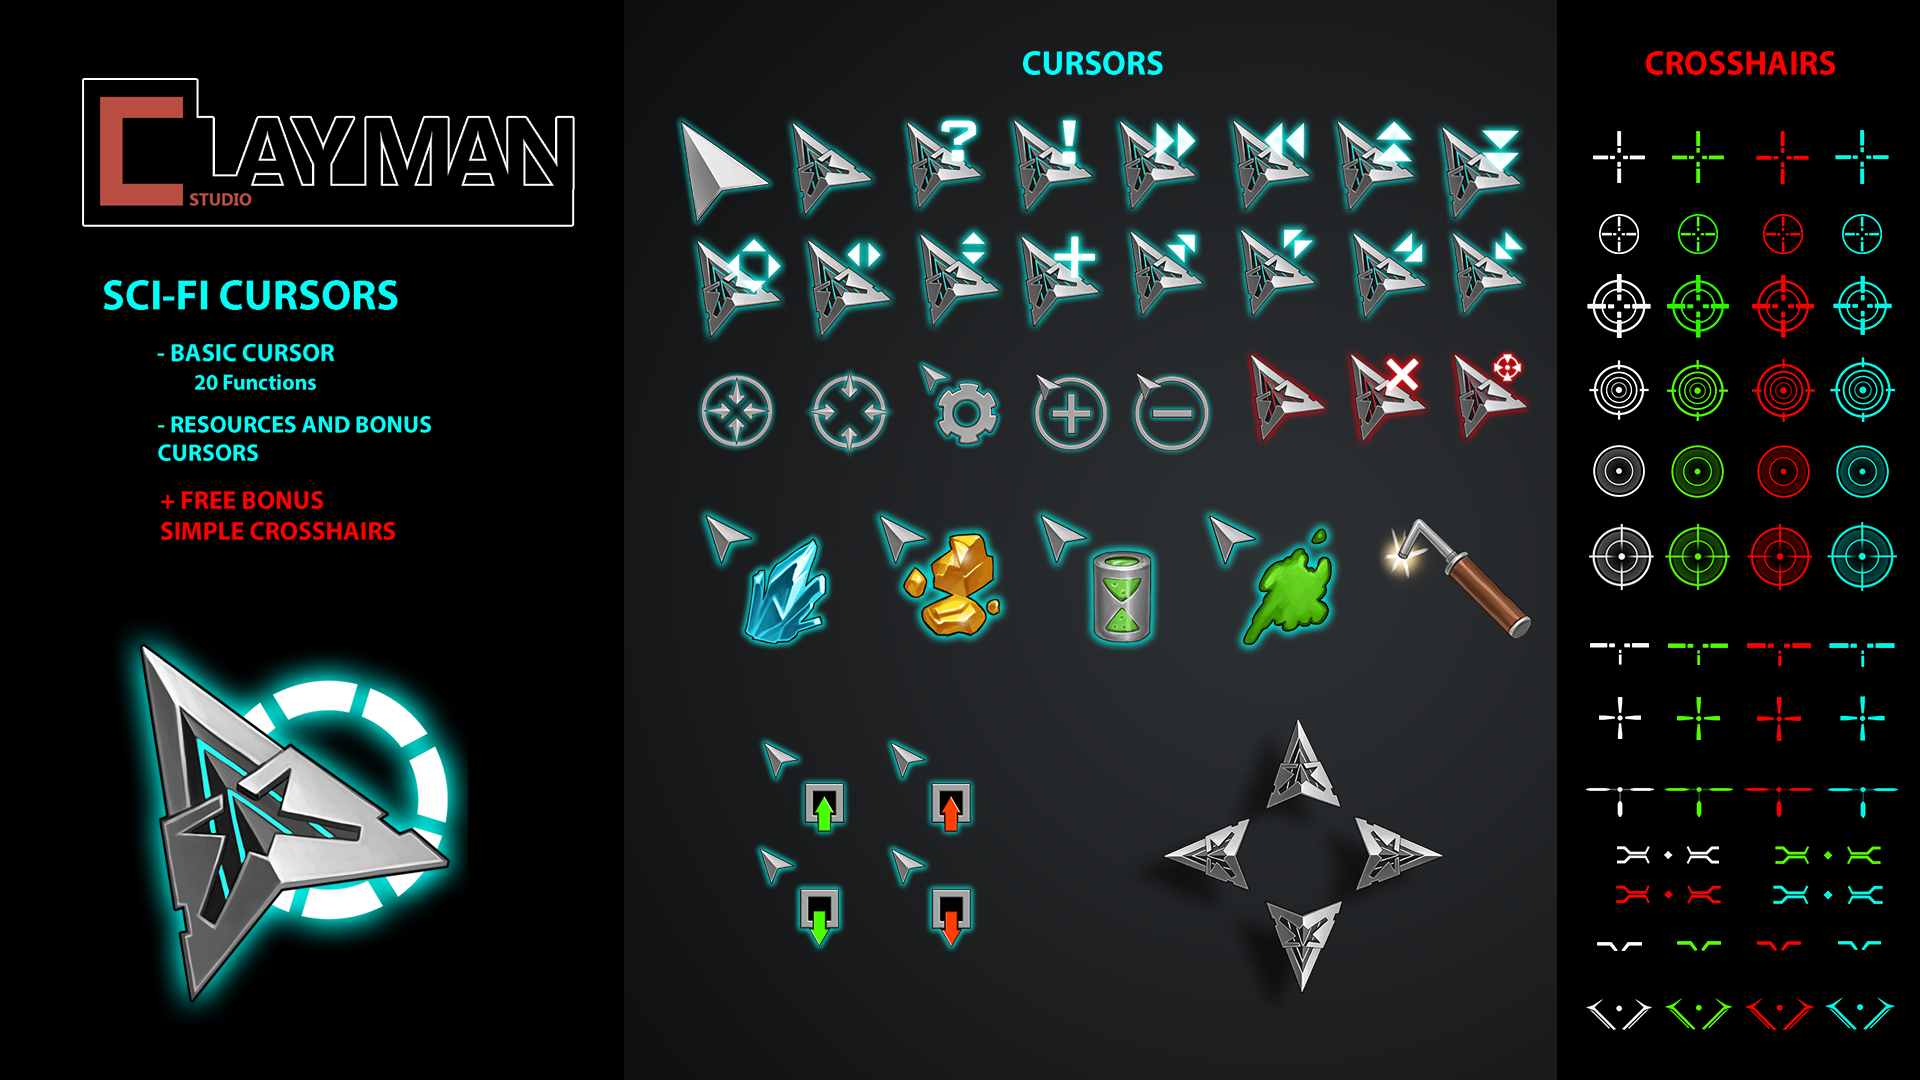 Sci-fi Cursors by ClayMan in 2D Assets - UE4 Marketplace